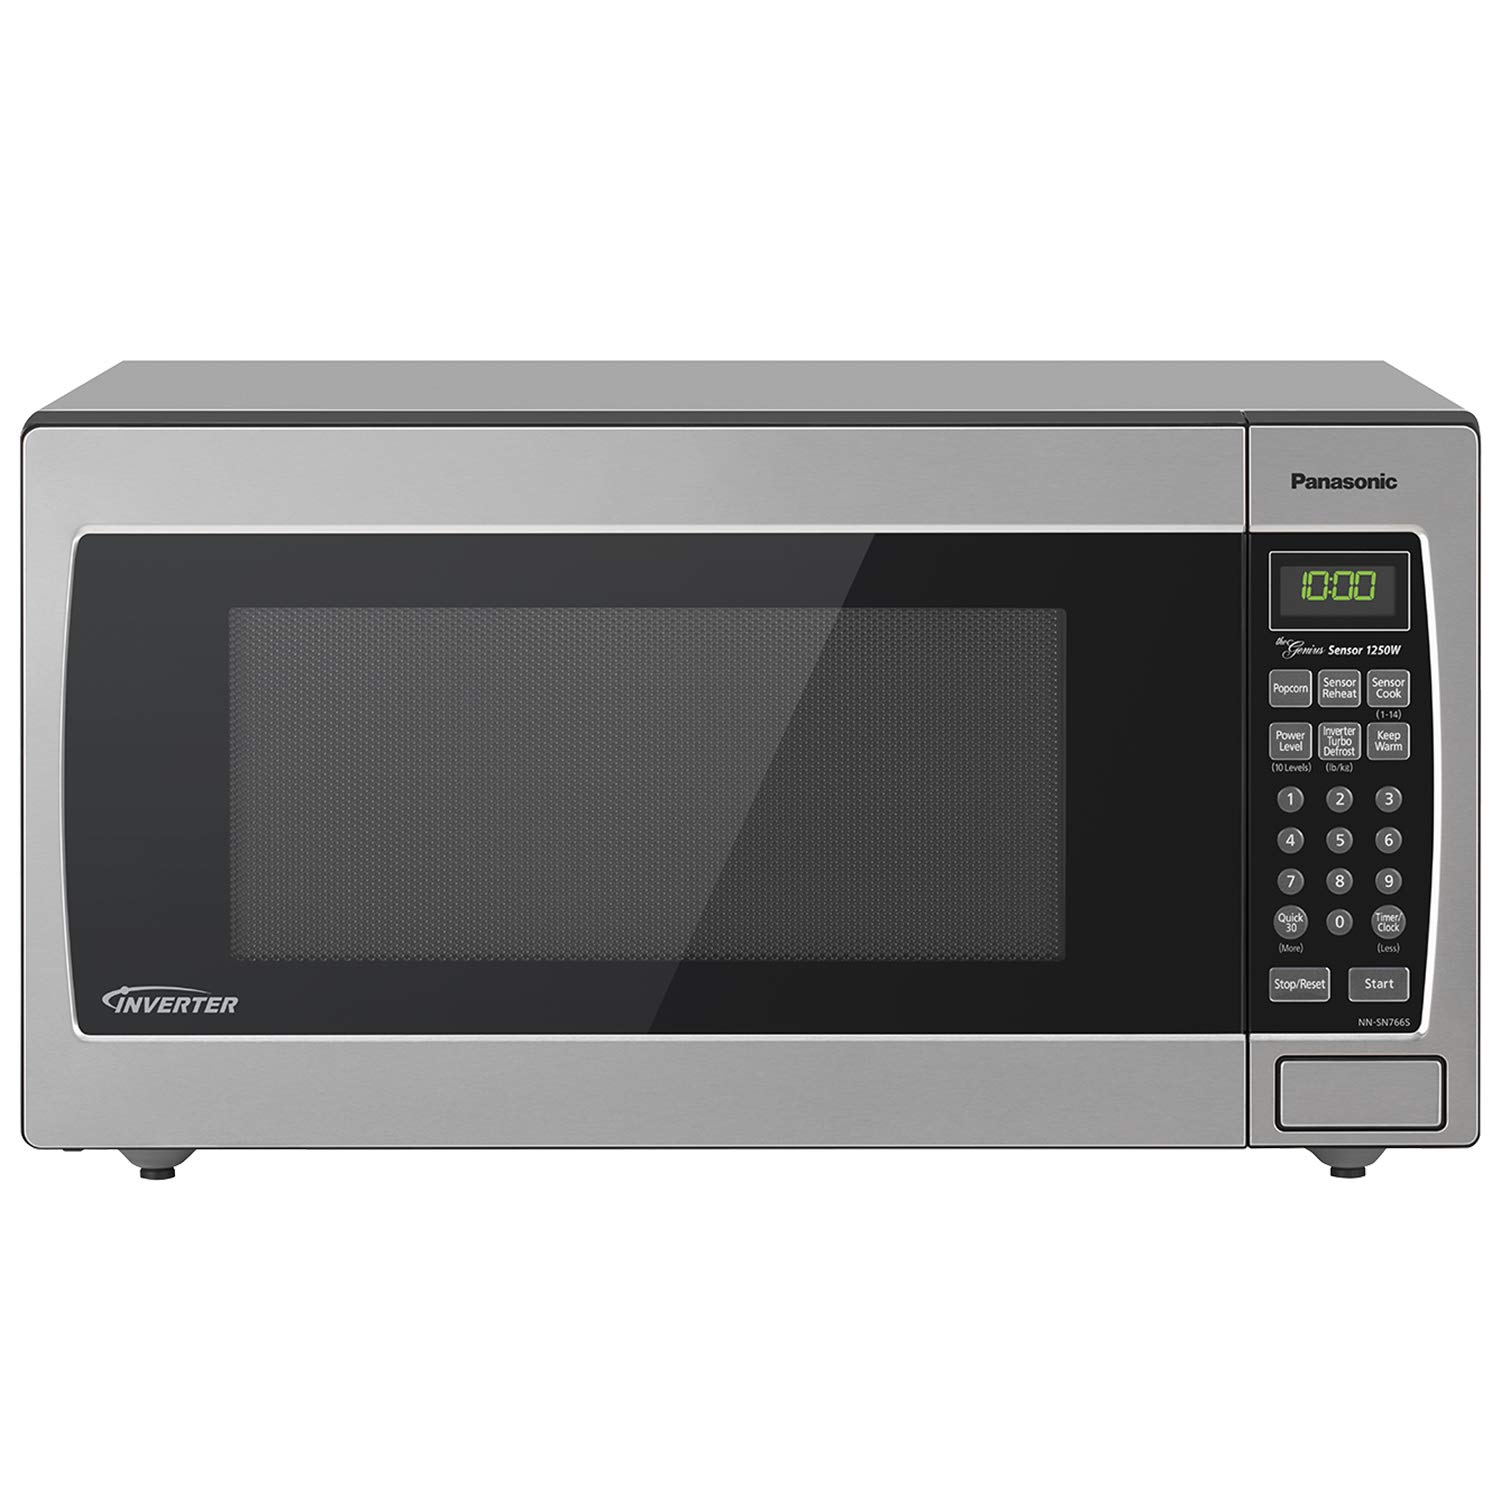 Panasonic Microwave Oven NN-SN766S Stainless Steel Countertop/Built-In with Inverter Technology and Genius Sensor, 1.6 Cu. Ft, 1250W by Panasonic